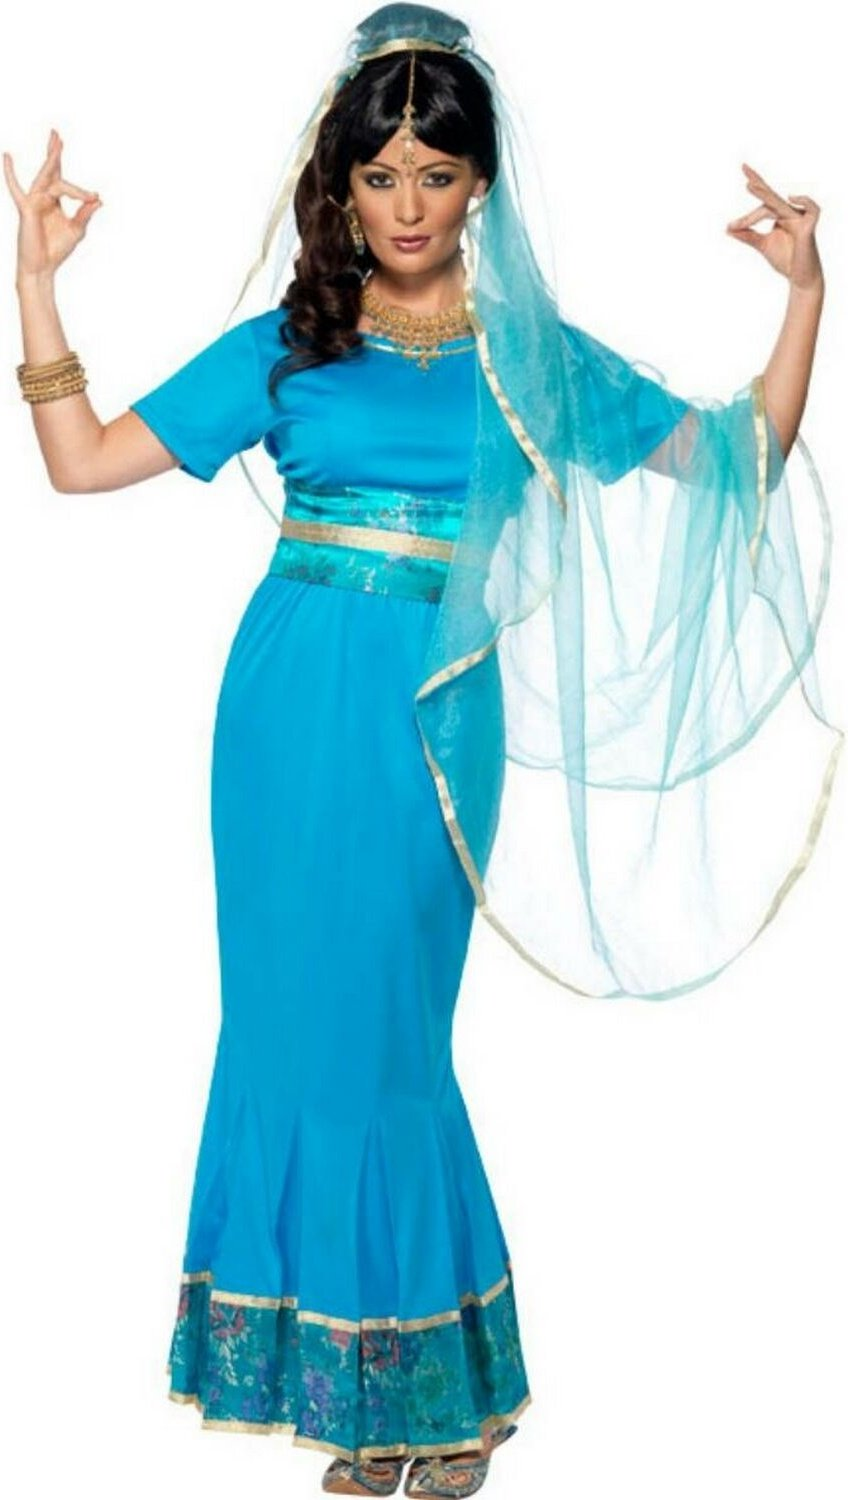 Blue Bollywood costume for women - S: Amazon.co.uk: Kitchen & Home